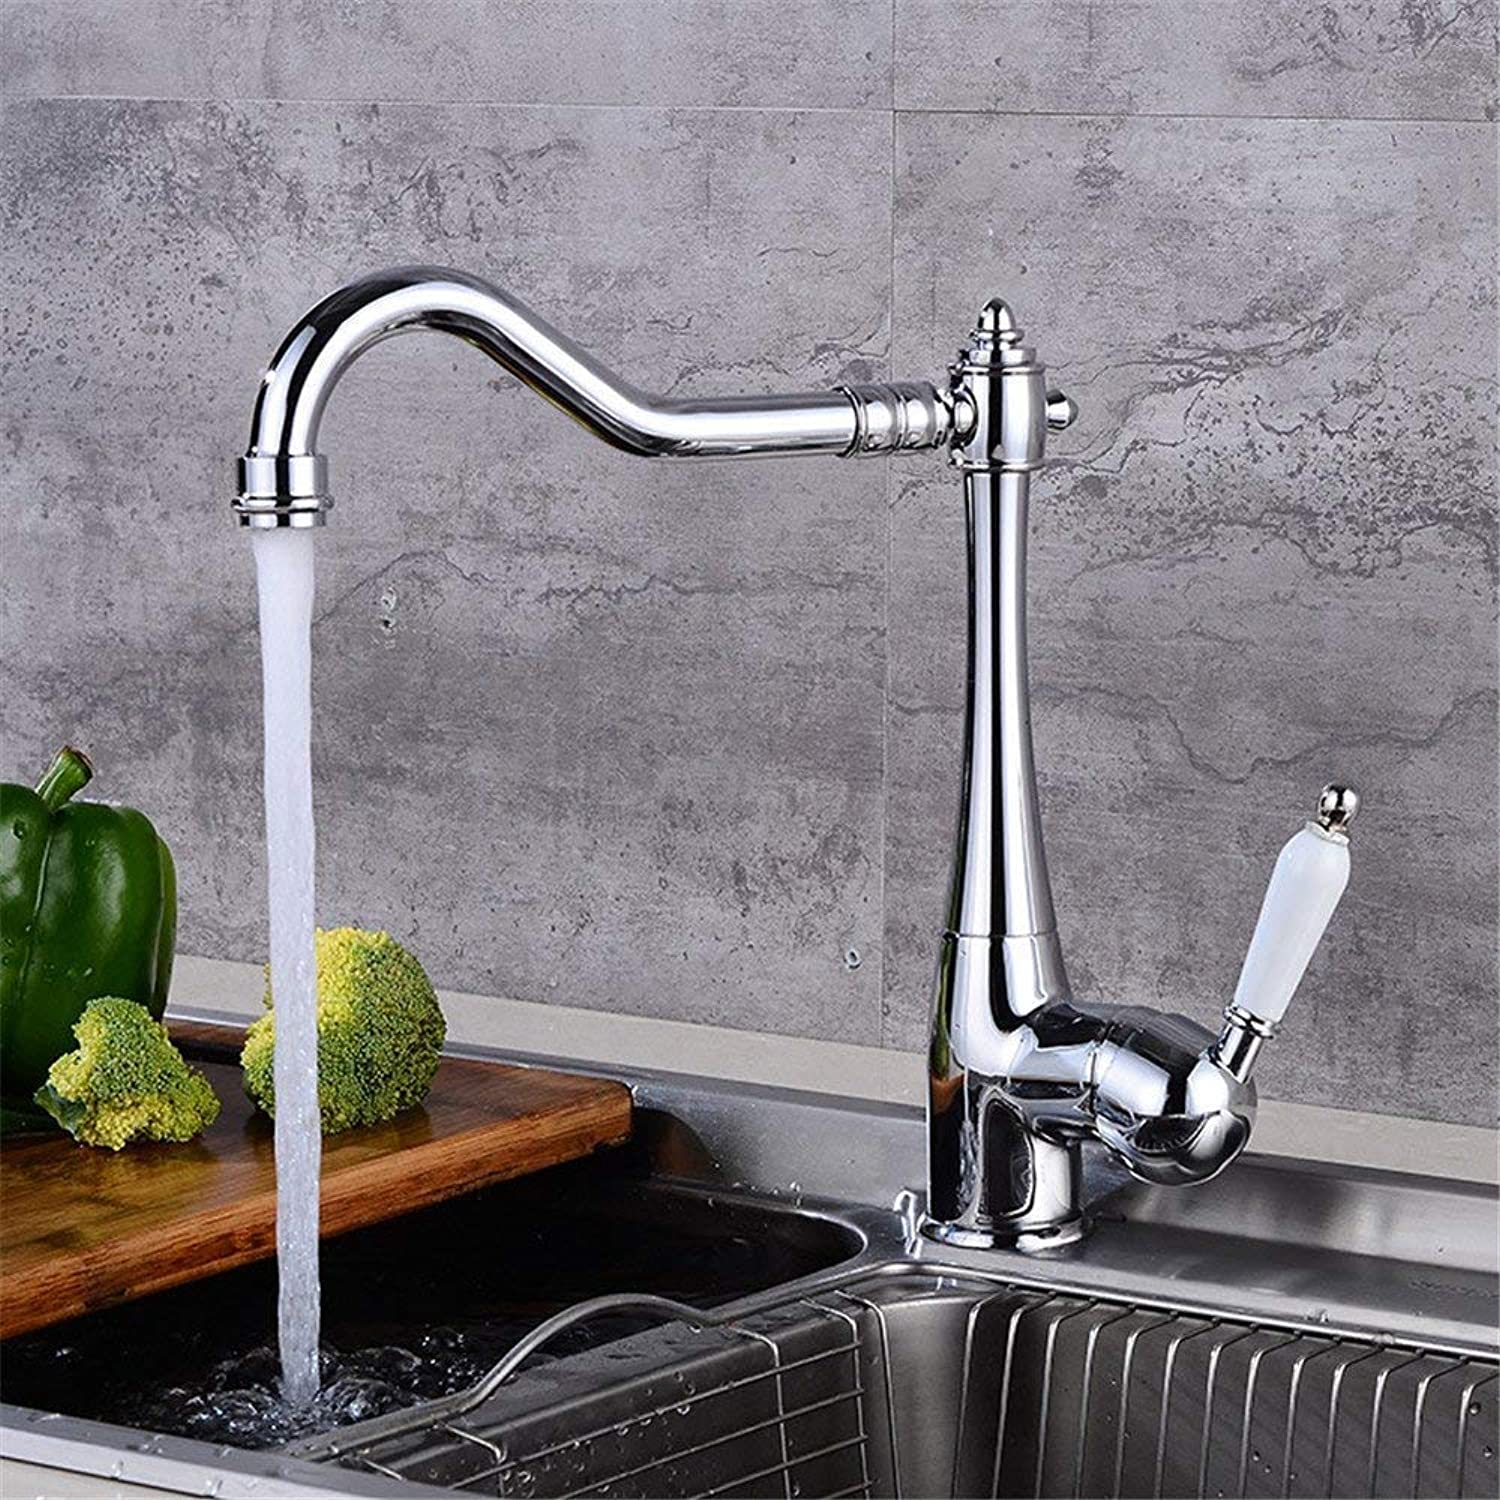 FuweiEncore Silver Spring Kitchen Faucet Mixing Faucet Wash Basin Disc Kitchen Mixer Lift Kai (color   -, Size   -)